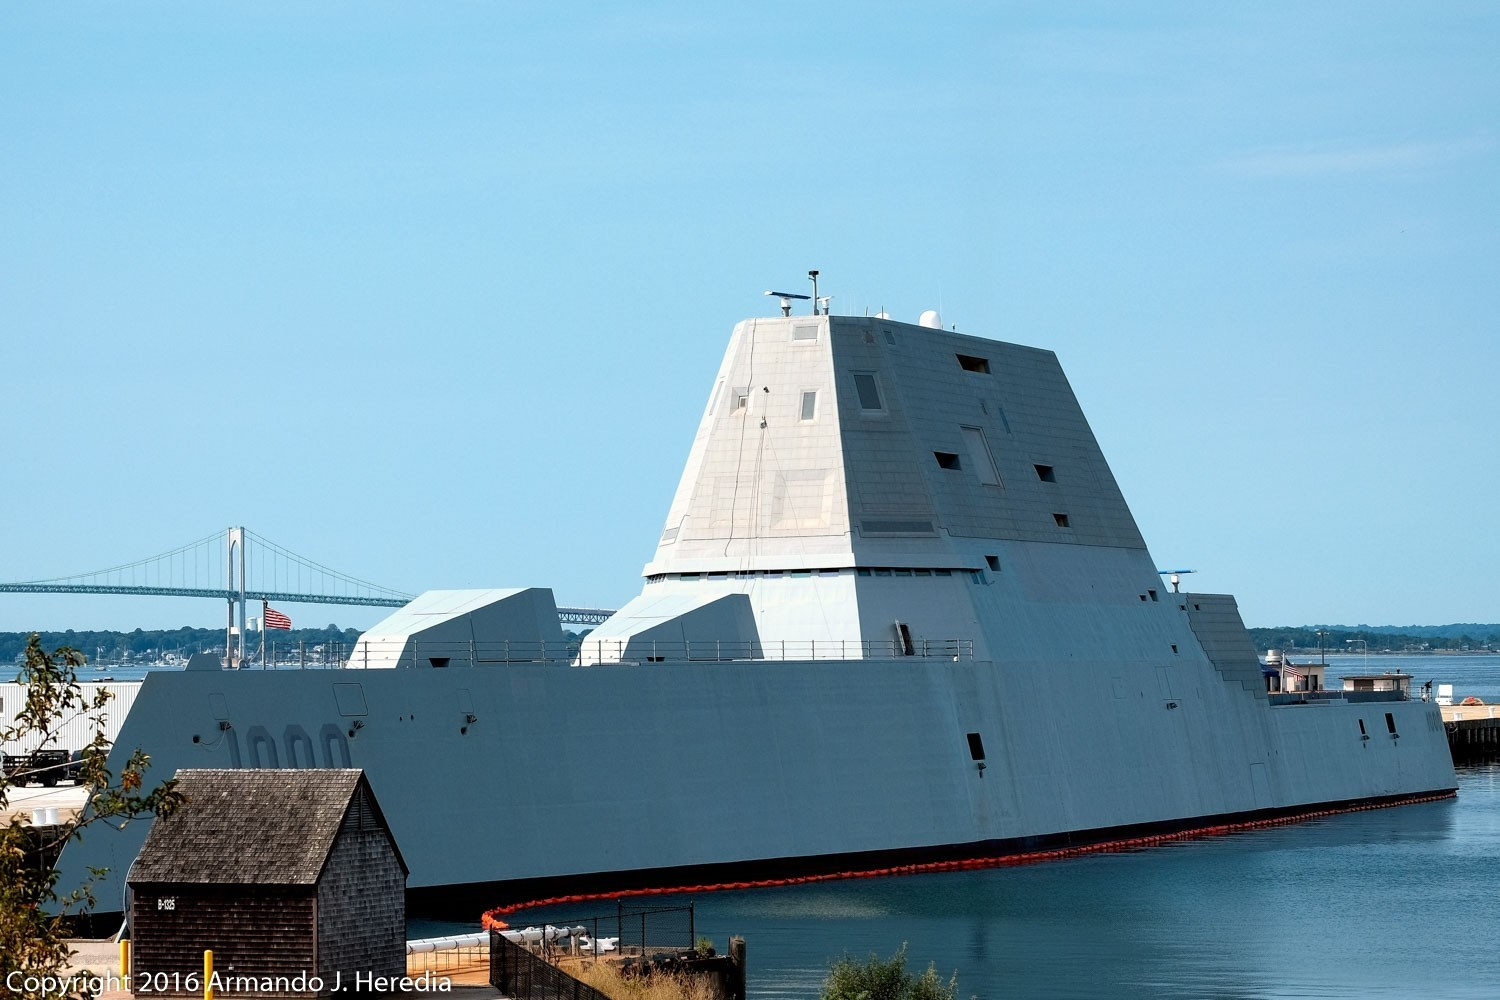 USSZUMWALT-09-16-015-Edit-WEB.jpg